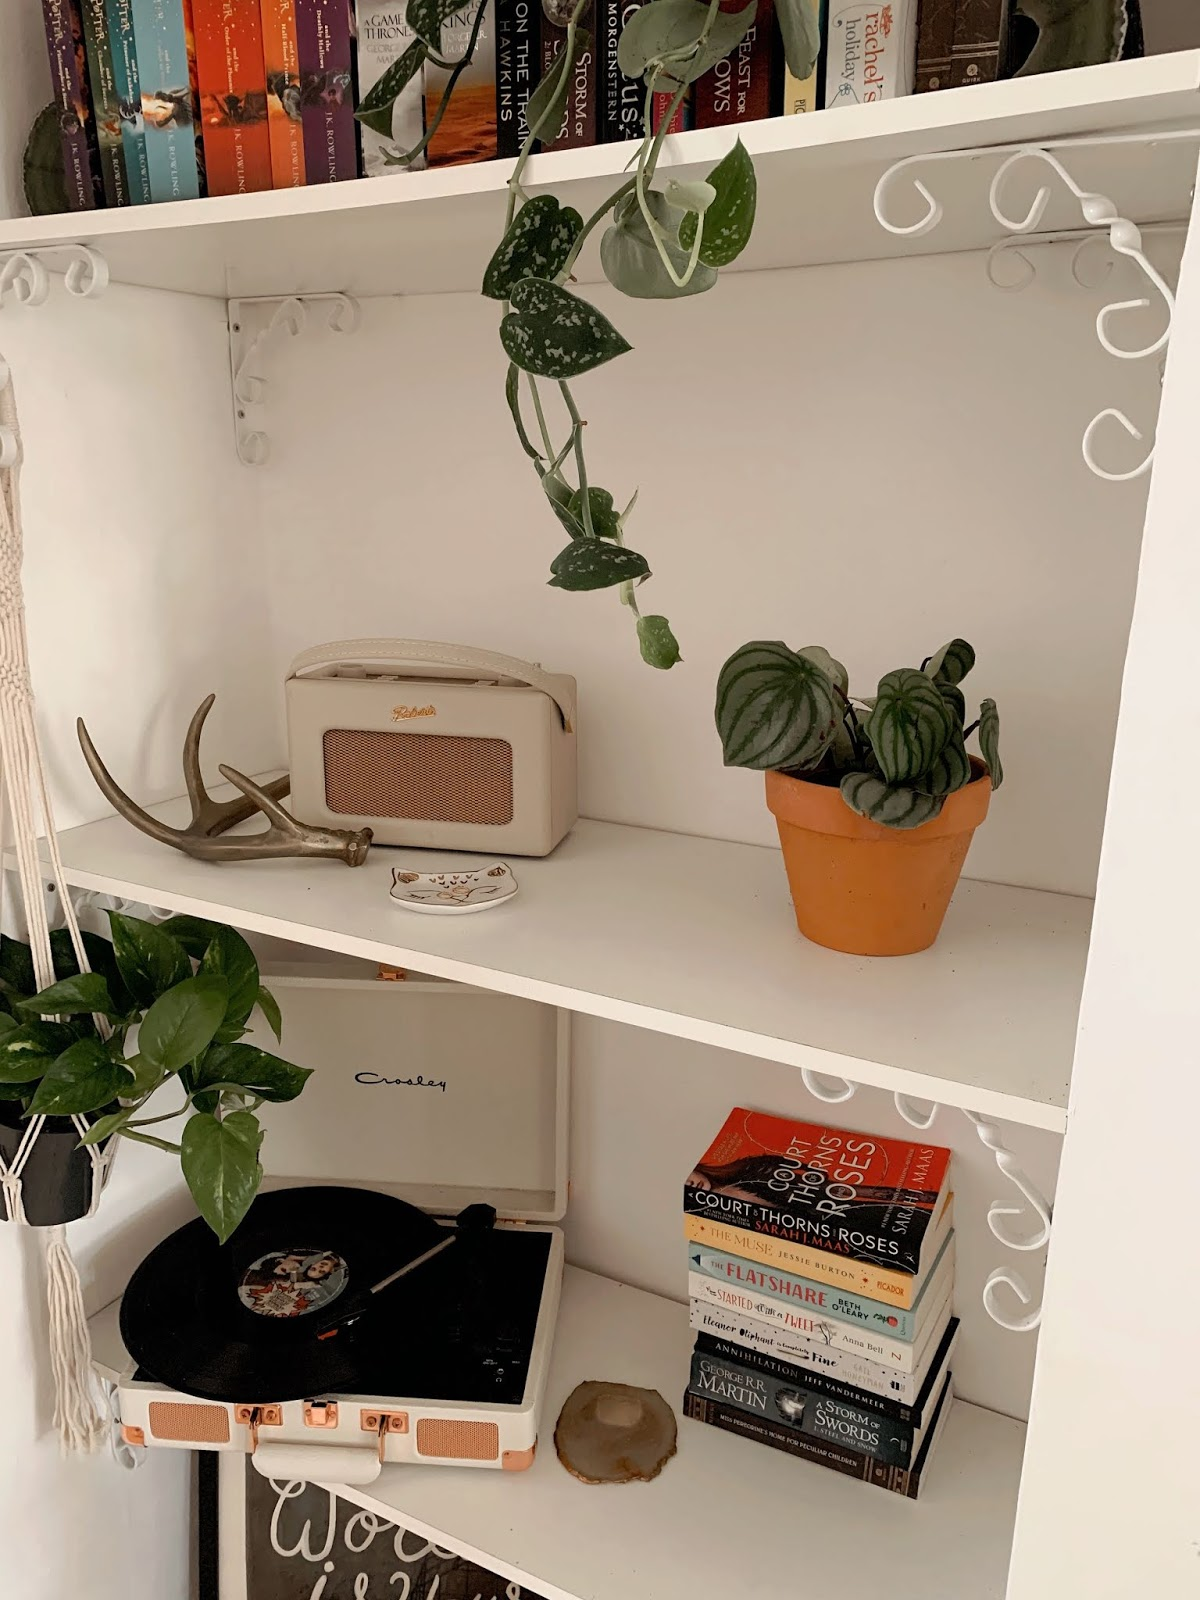 Book shelf houseplants crosley radio player